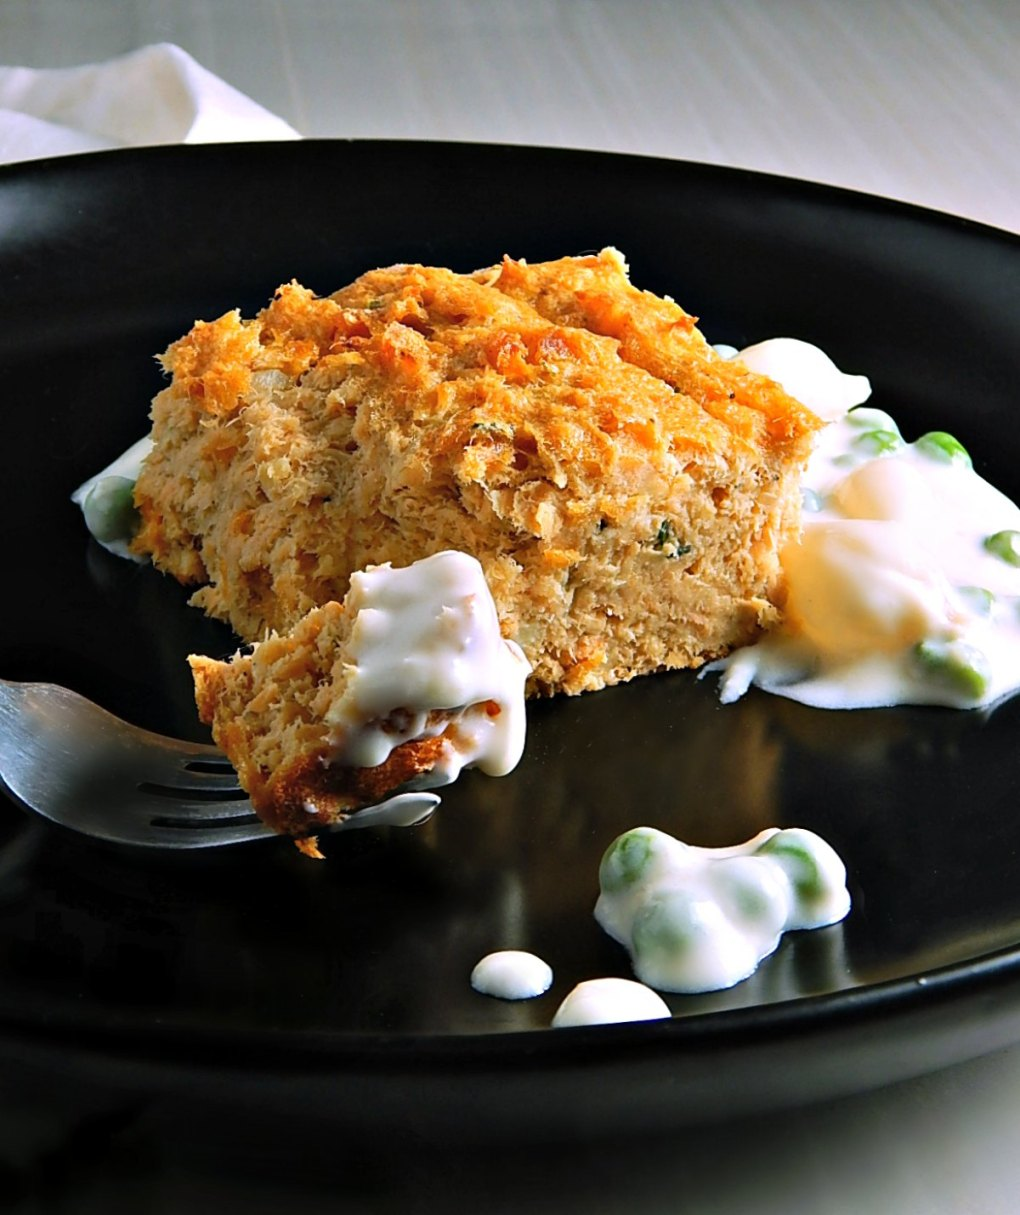 Not Grandma's Salmon Loaf